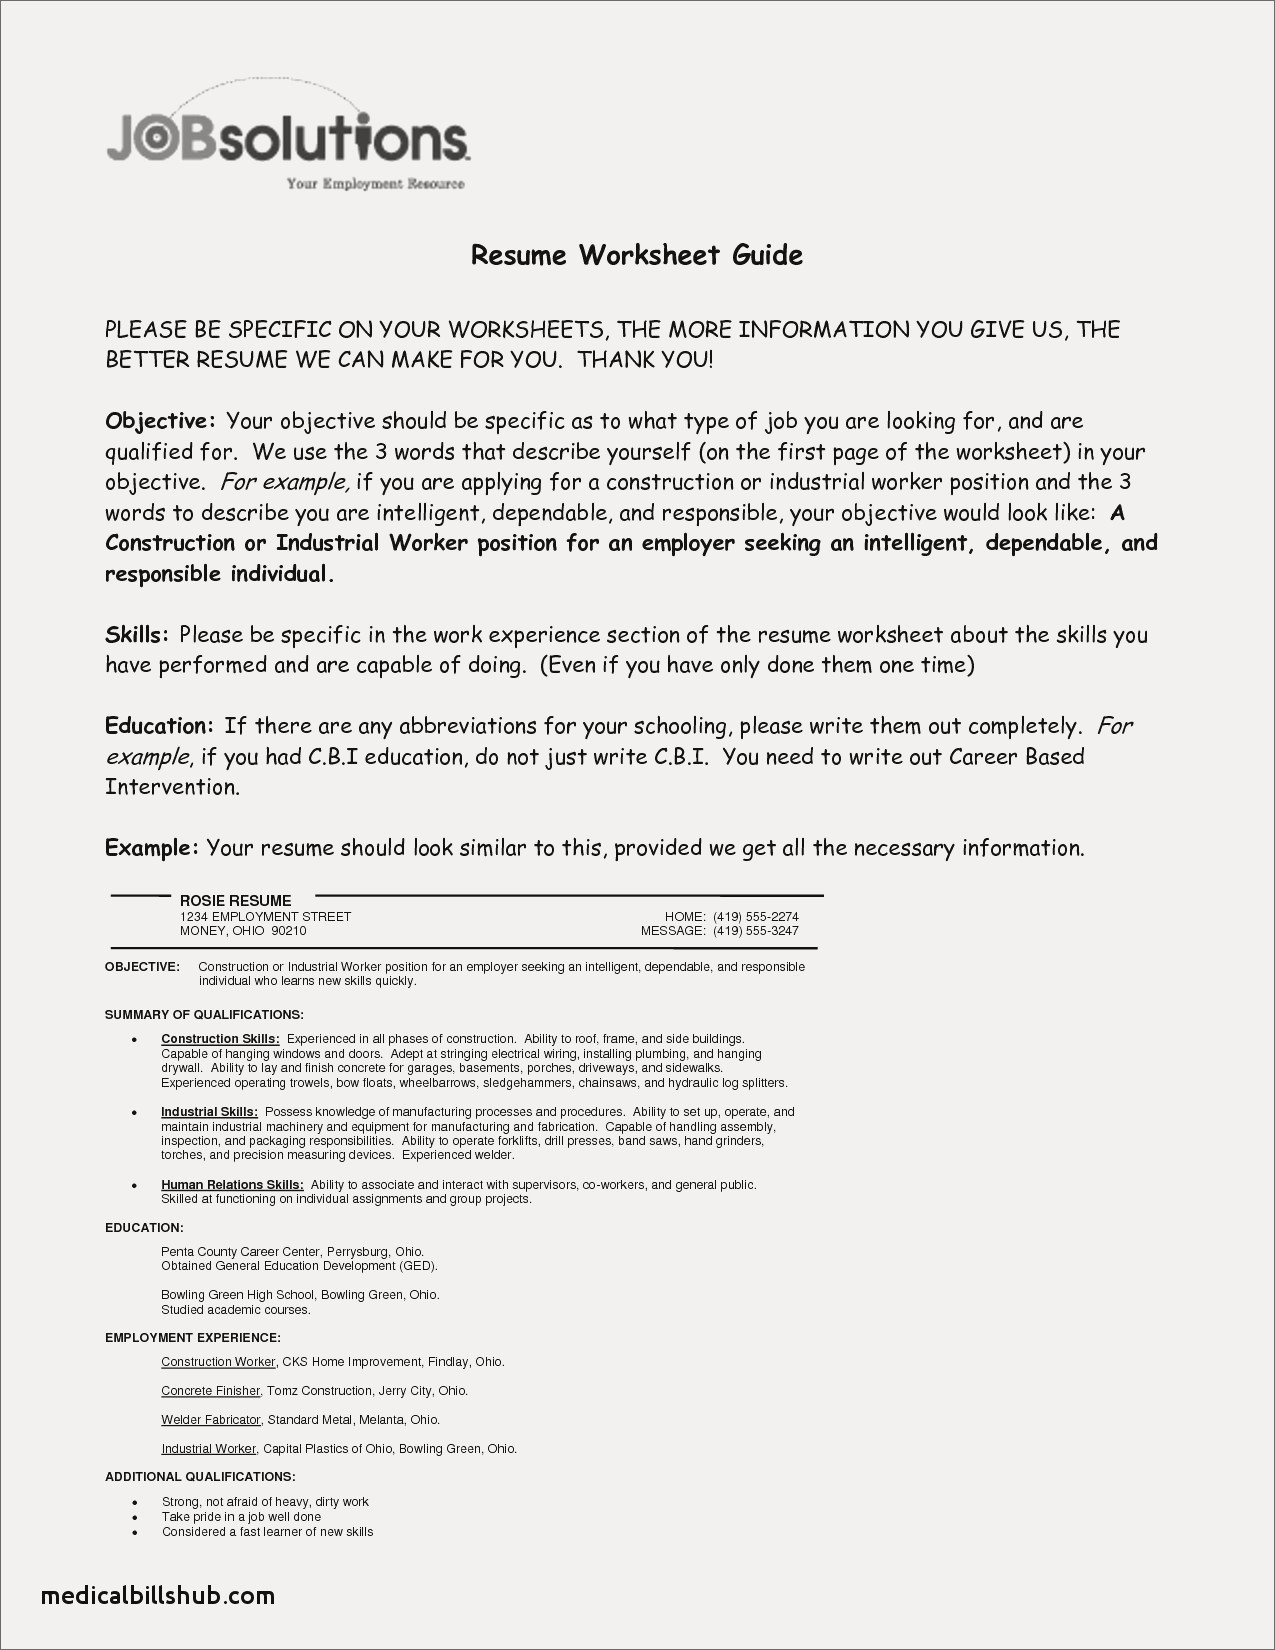 Plumber Resume Template - Objective for Resume Healthcare Example Best Best Sample College